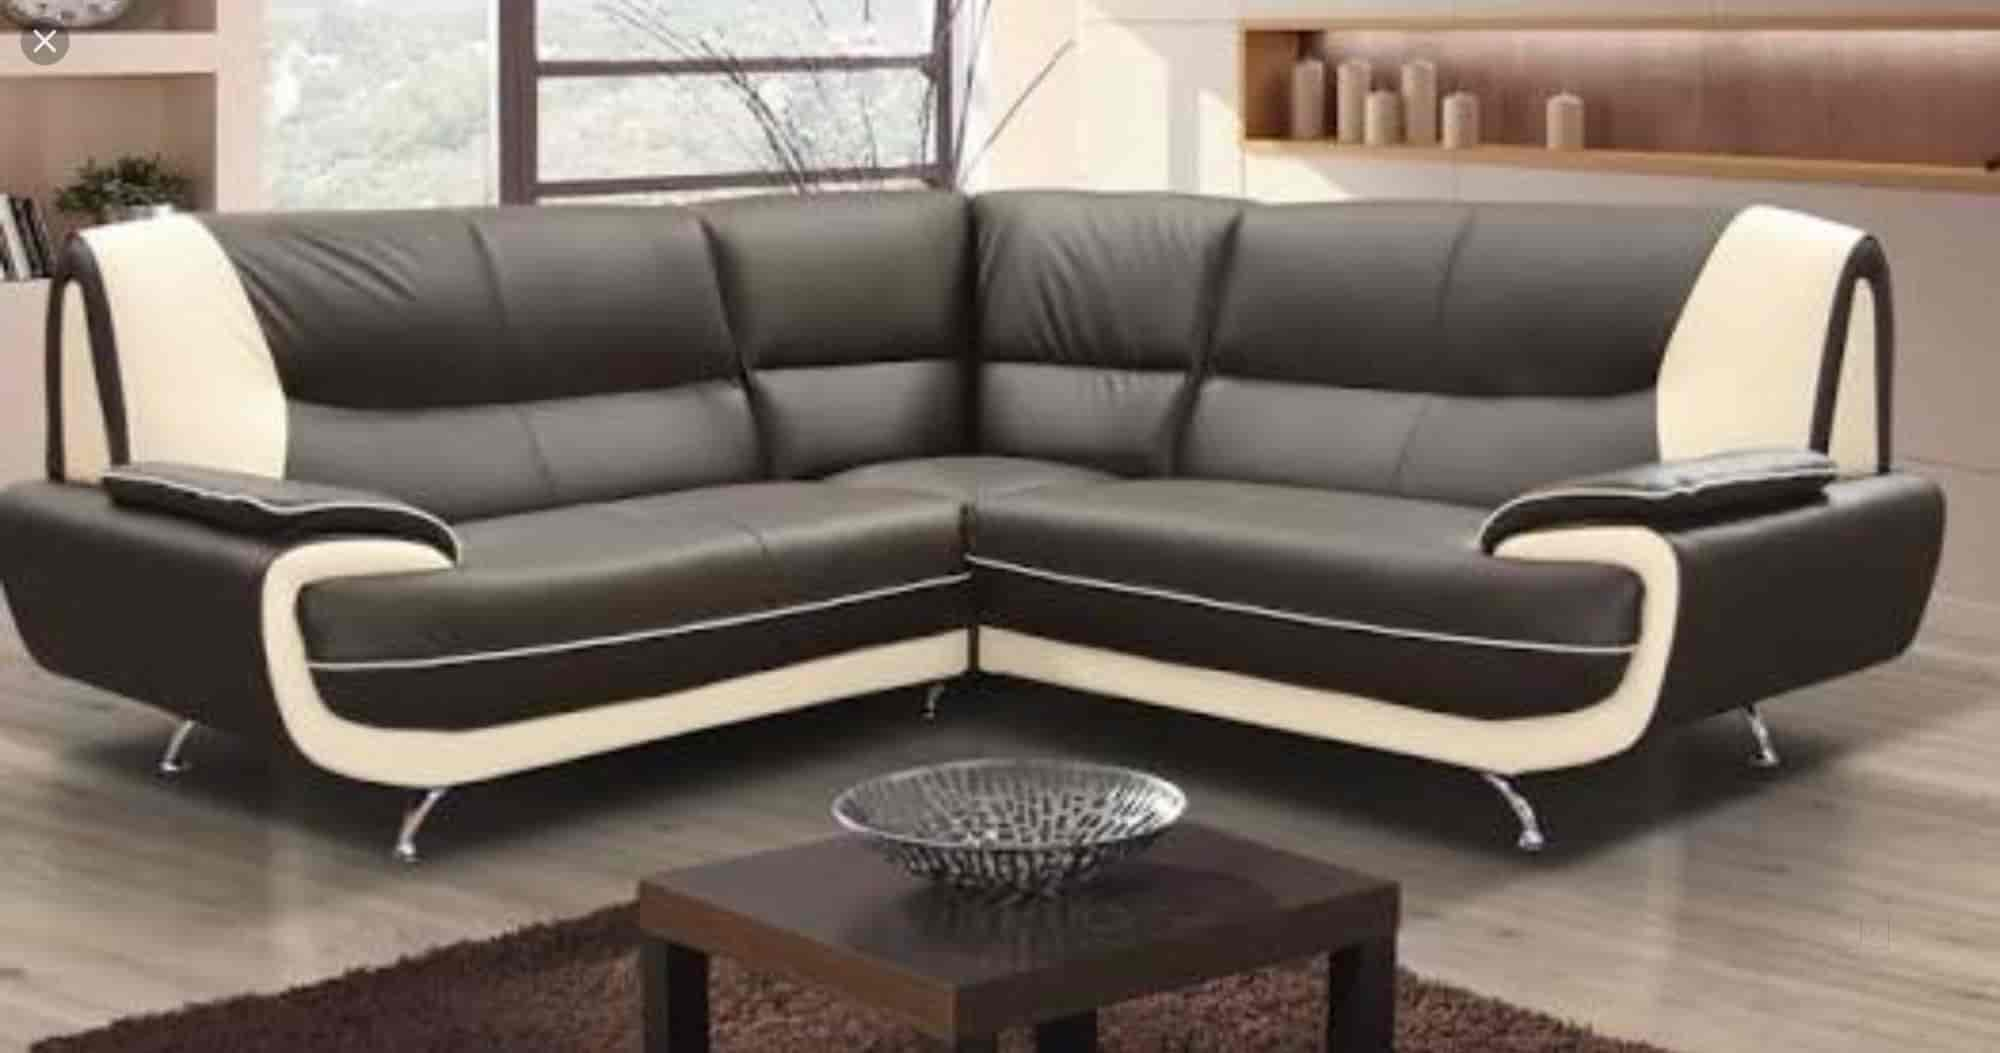 cushion sofa set w pull out trundle tawwakal repair services in lonavala justdial